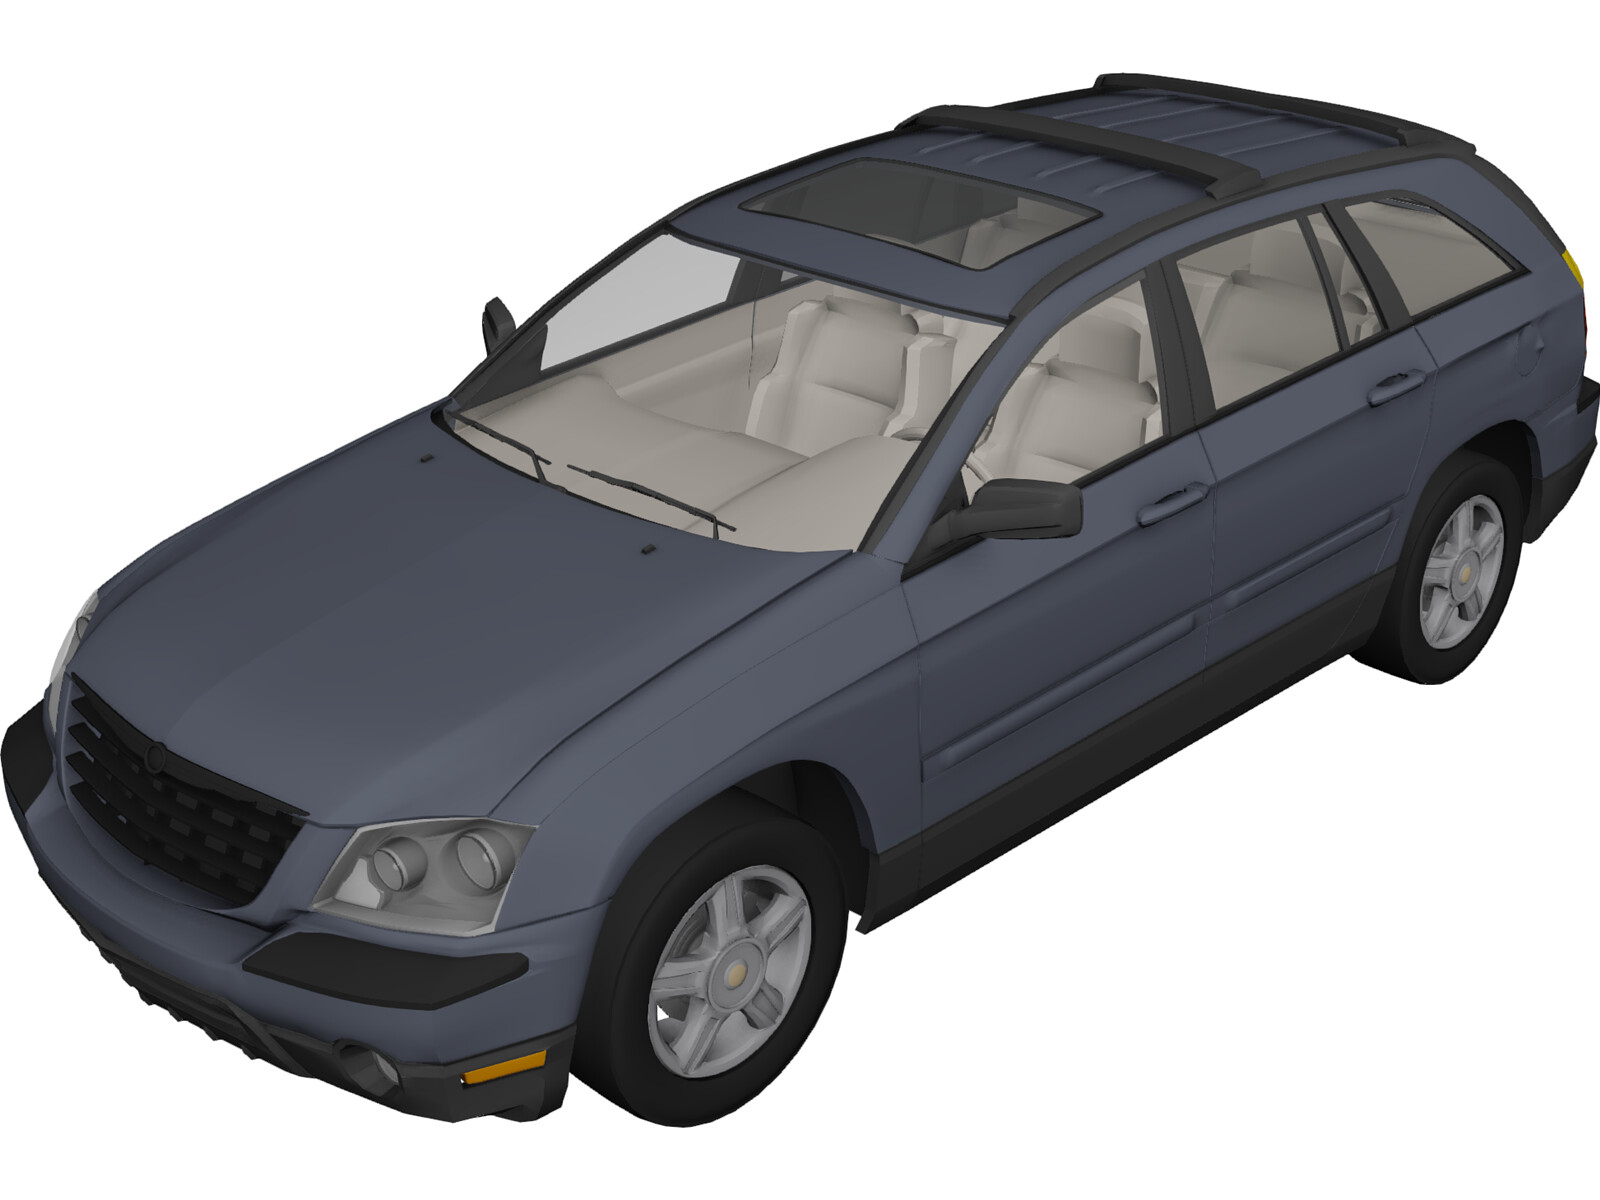 2012 Ford Escape Oil Type >> Chrysler Pacifica 3D Model - 3D CAD Browser